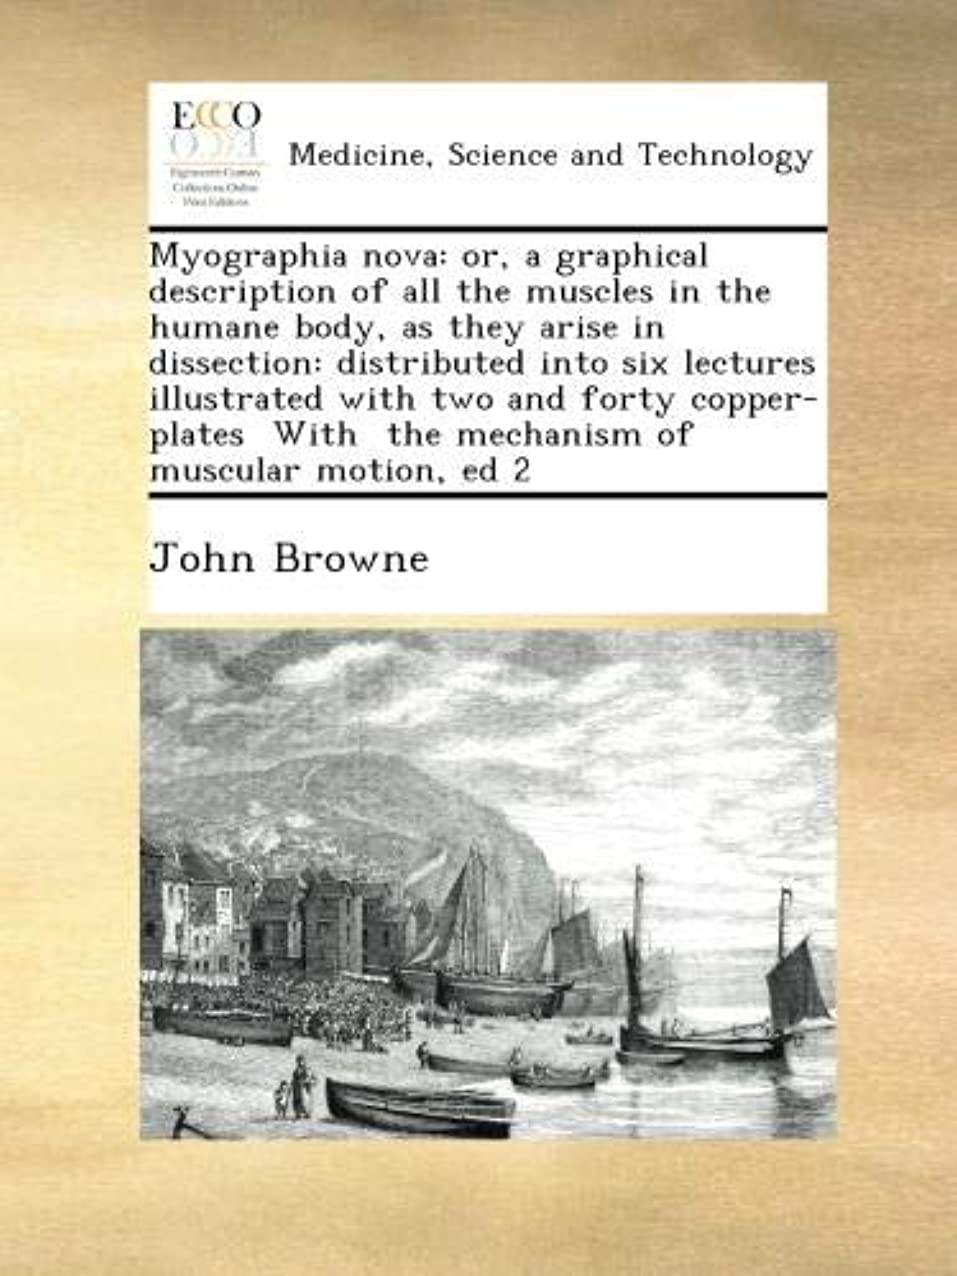 お別れテニスバケットMyographia nova: or, a graphical description of all the muscles in the humane body, as they arise in dissection: distributed into six lectures  illustrated with two and forty copper-plates  With  the mechanism of muscular motion, ed 2